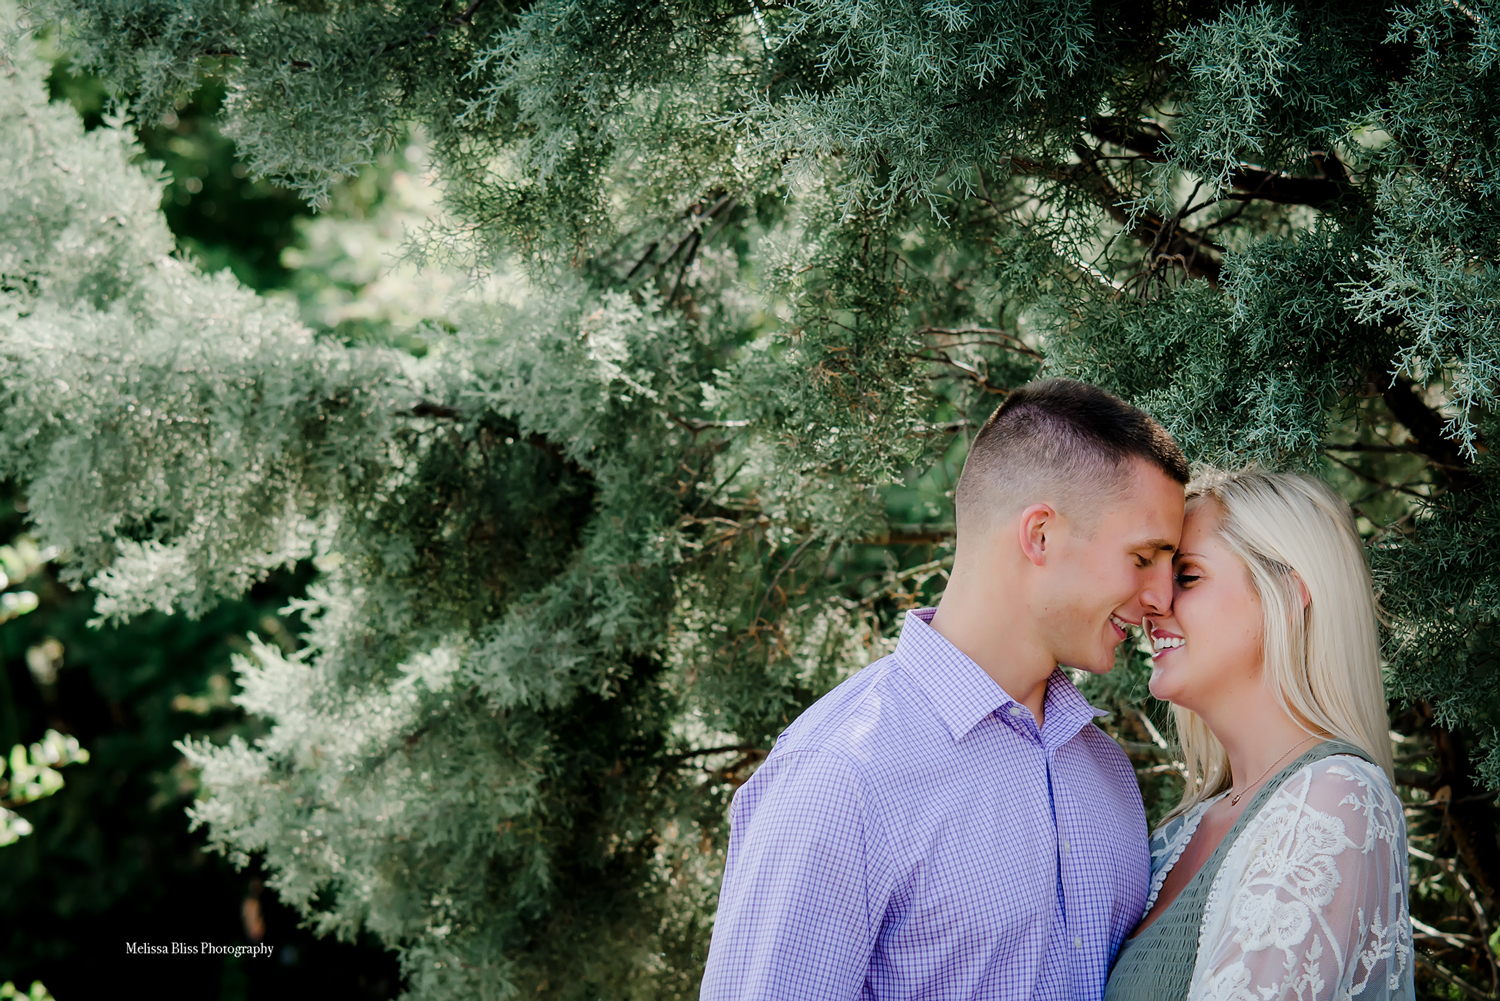 norfolk-engagement-session-downtown-melissa-bliss-photography-virginia-wedding-and-elopement-photographer.jpg